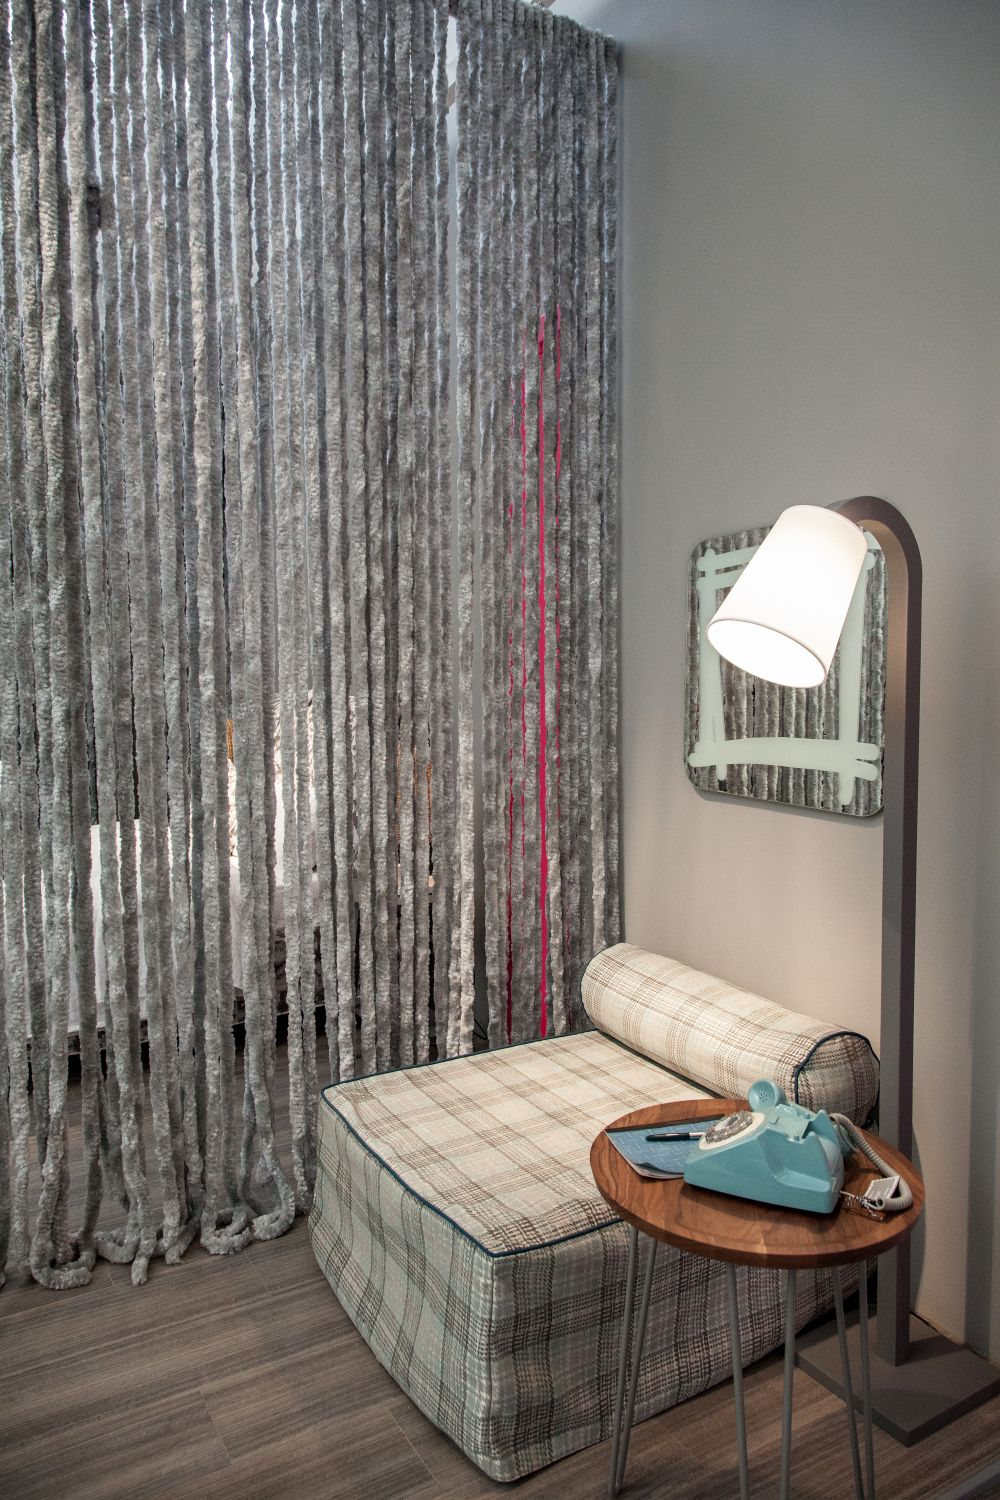 You can separate your reading nook from the rest of the room using curtains or a divider